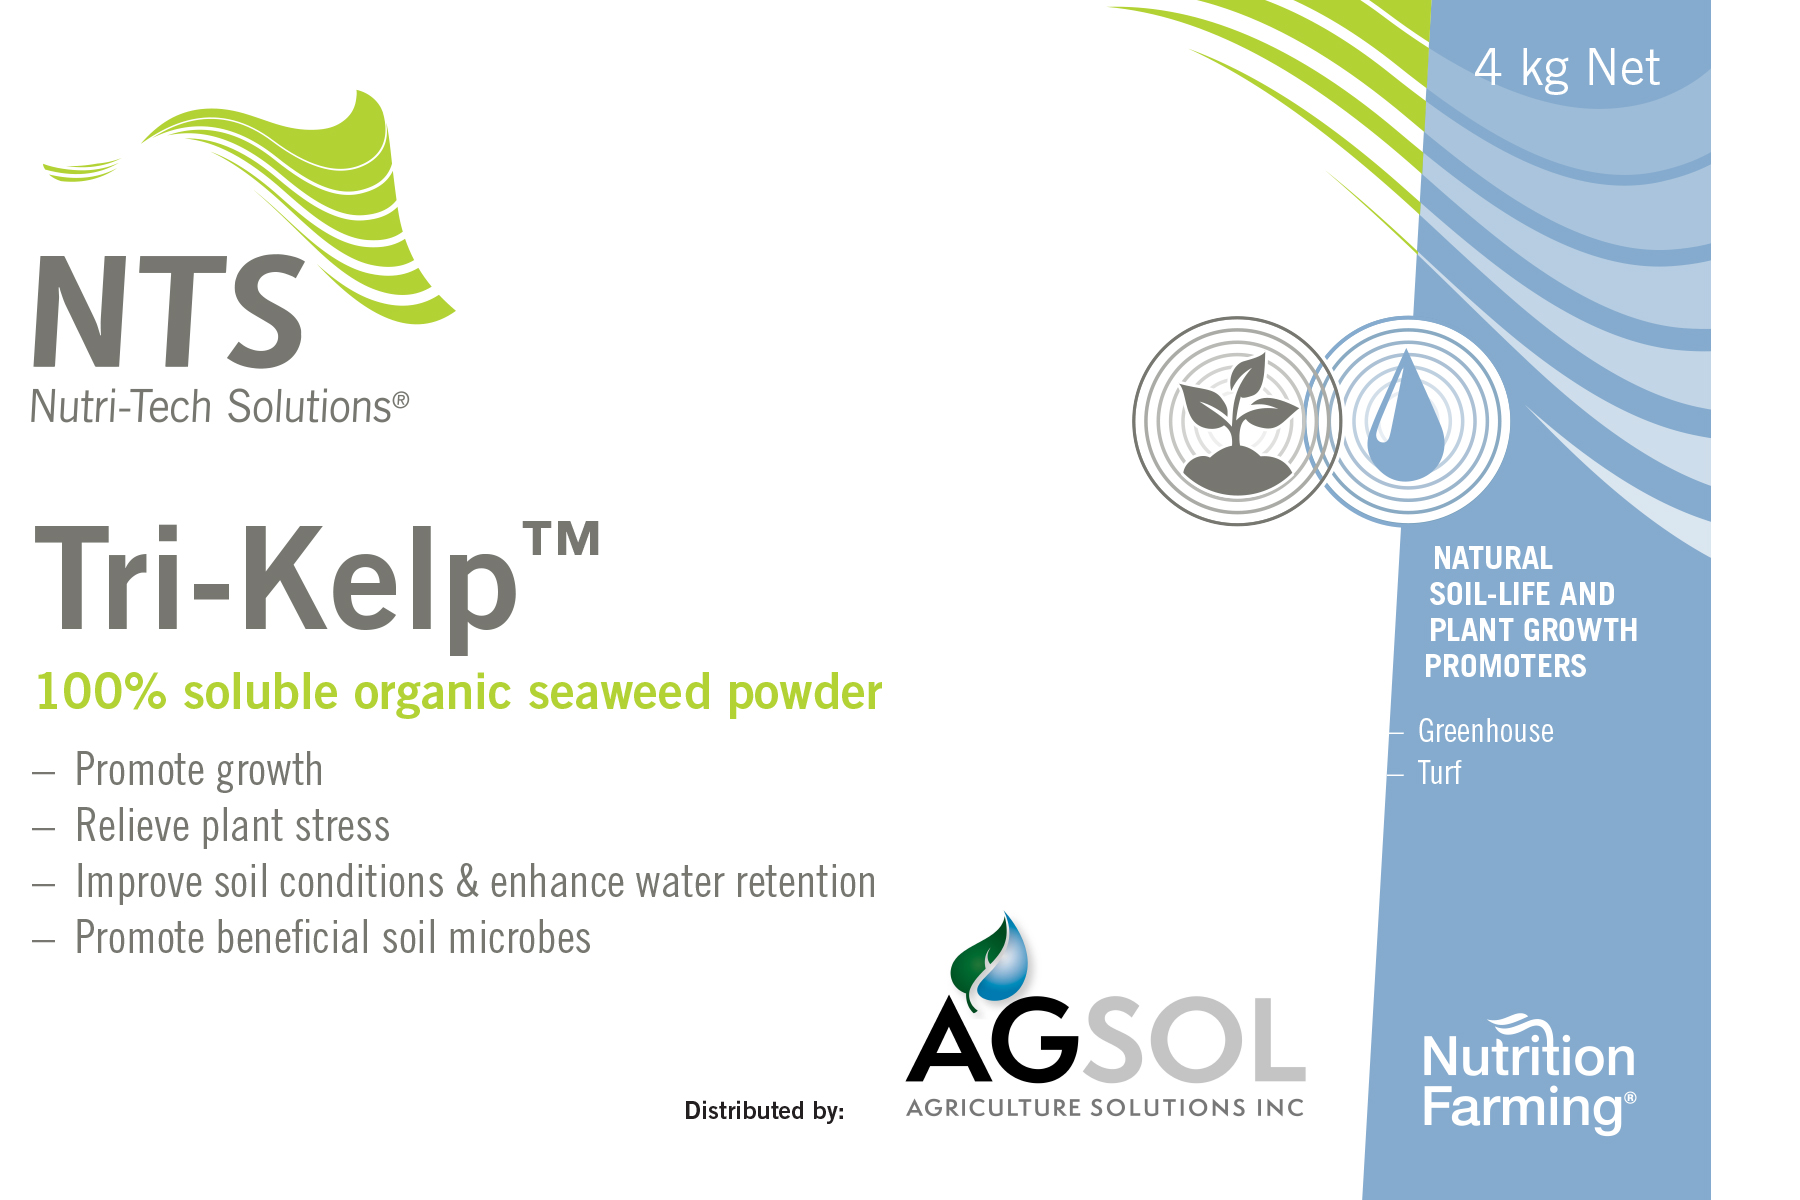 Foliar Applied Fertilizer Products | Agriculture Solutions